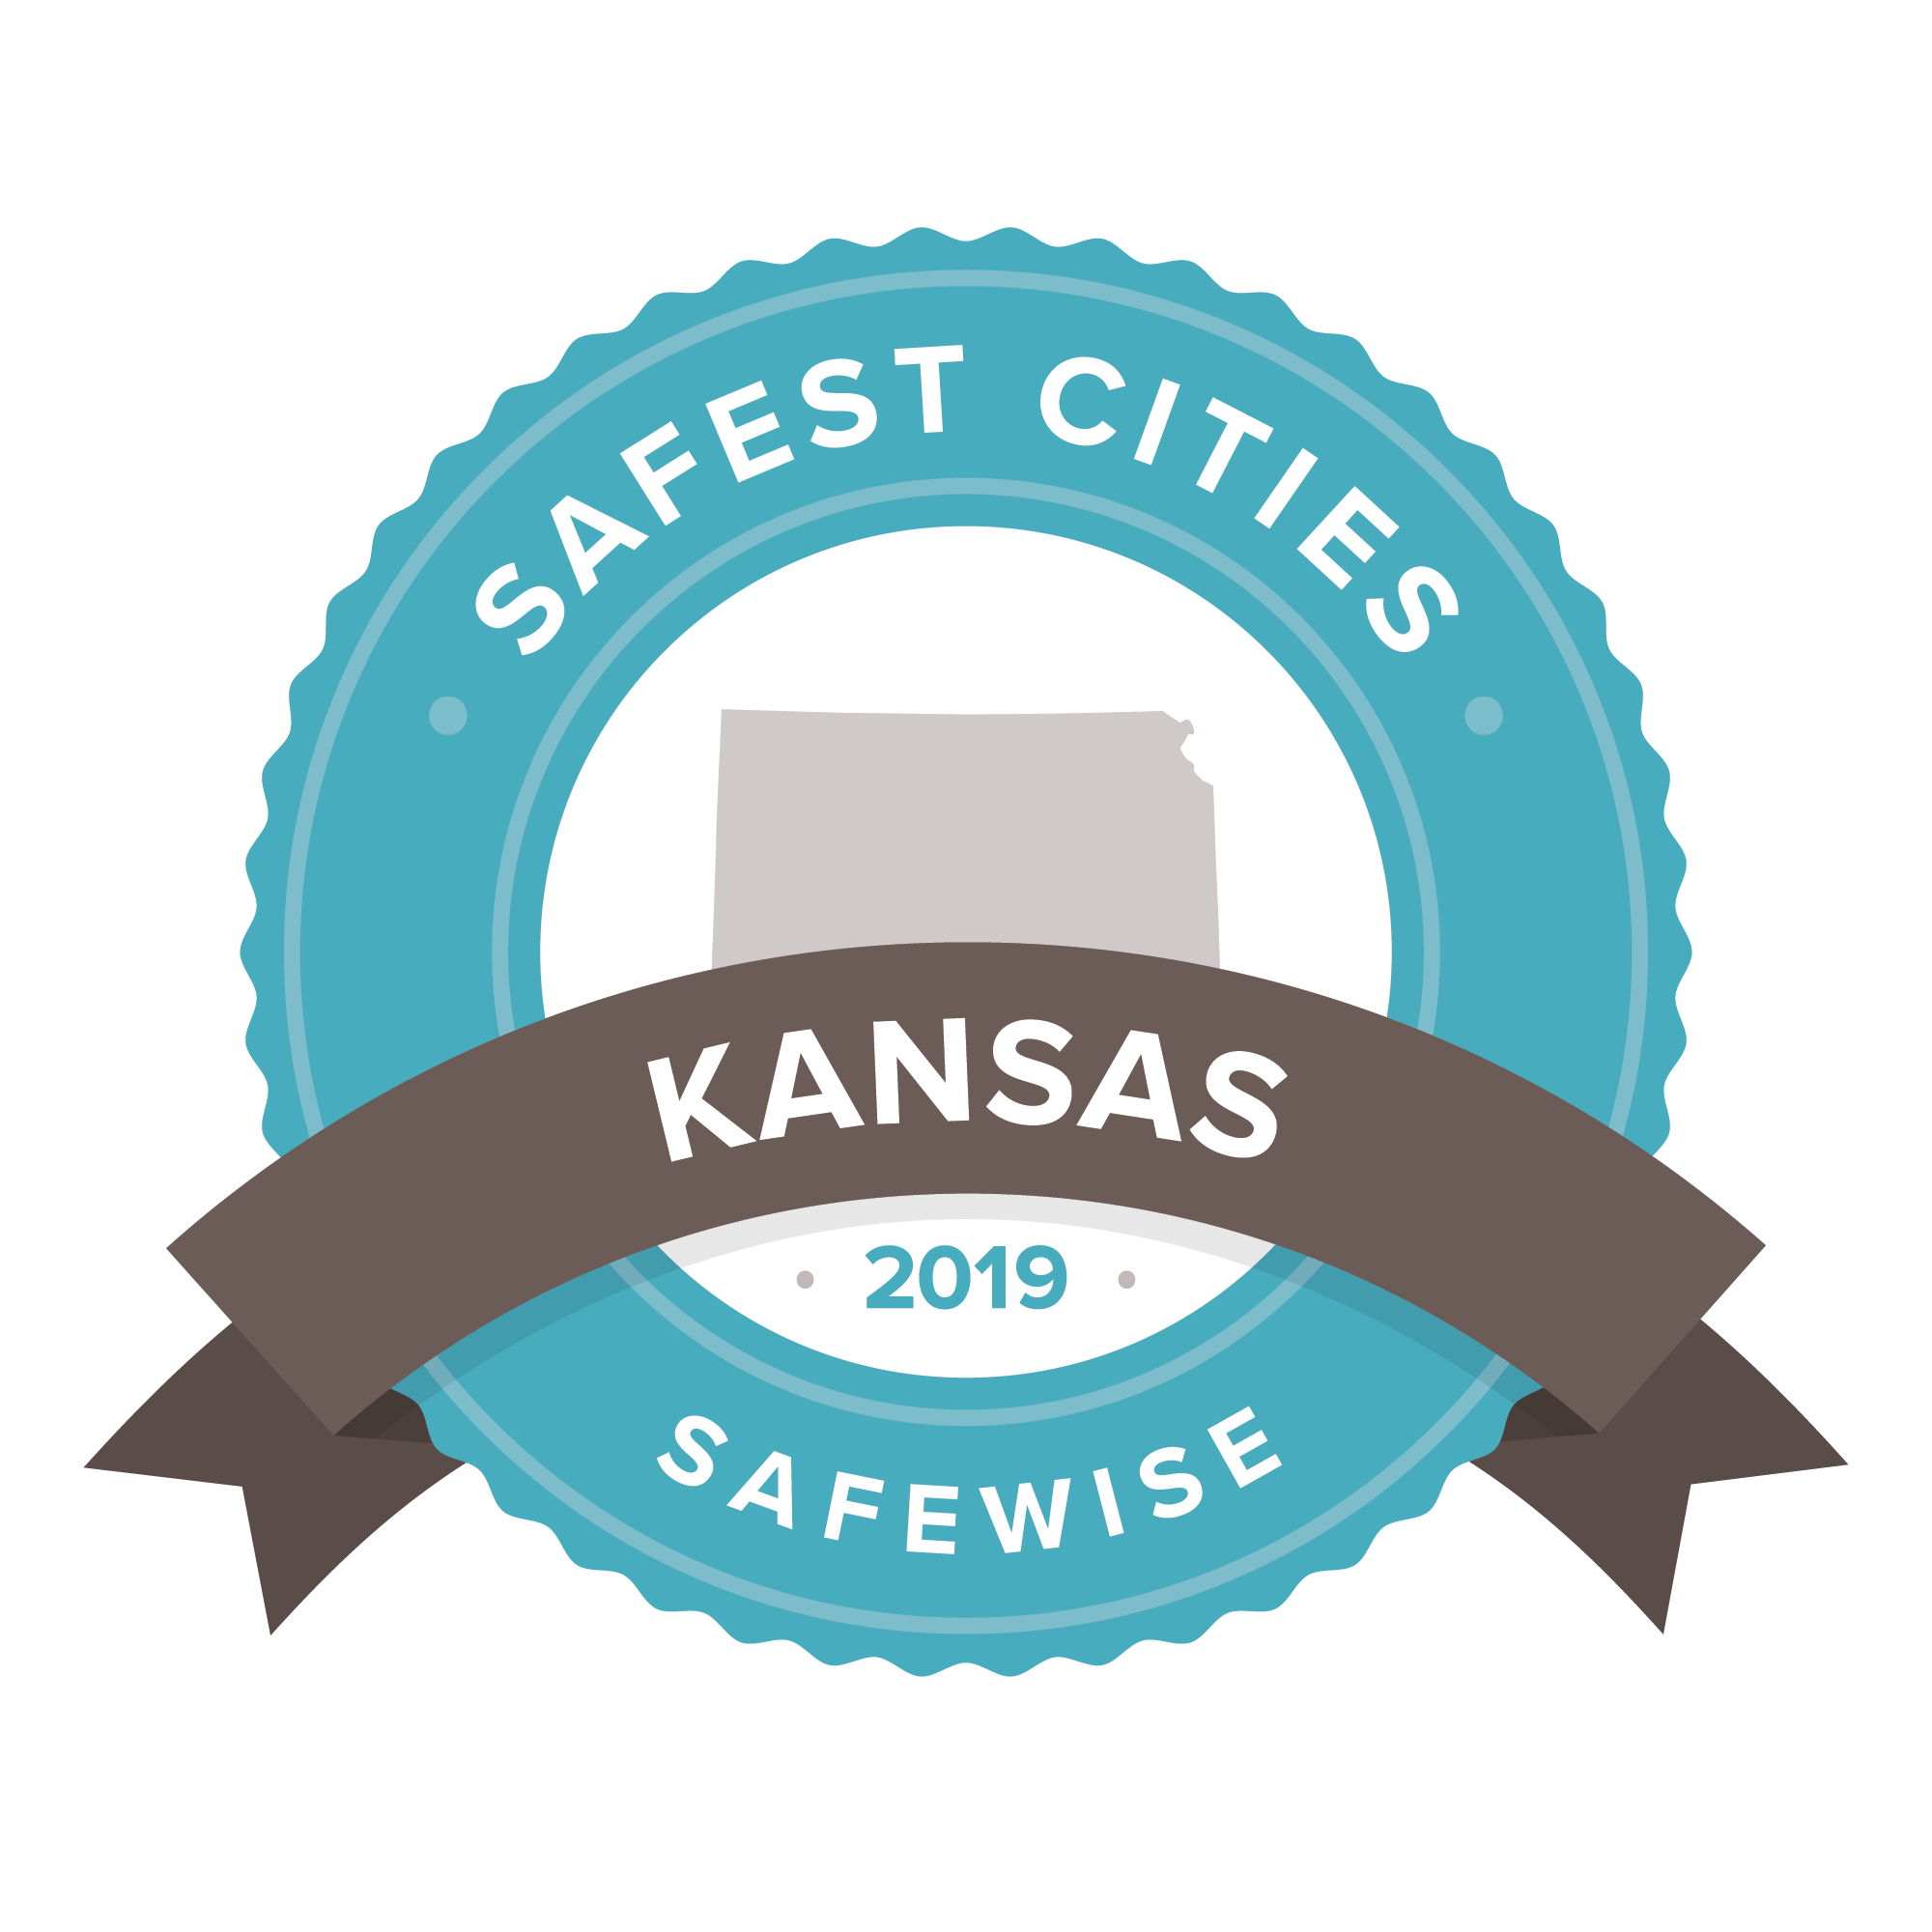 Rose Hill Ranked #2 safest city in Kansas